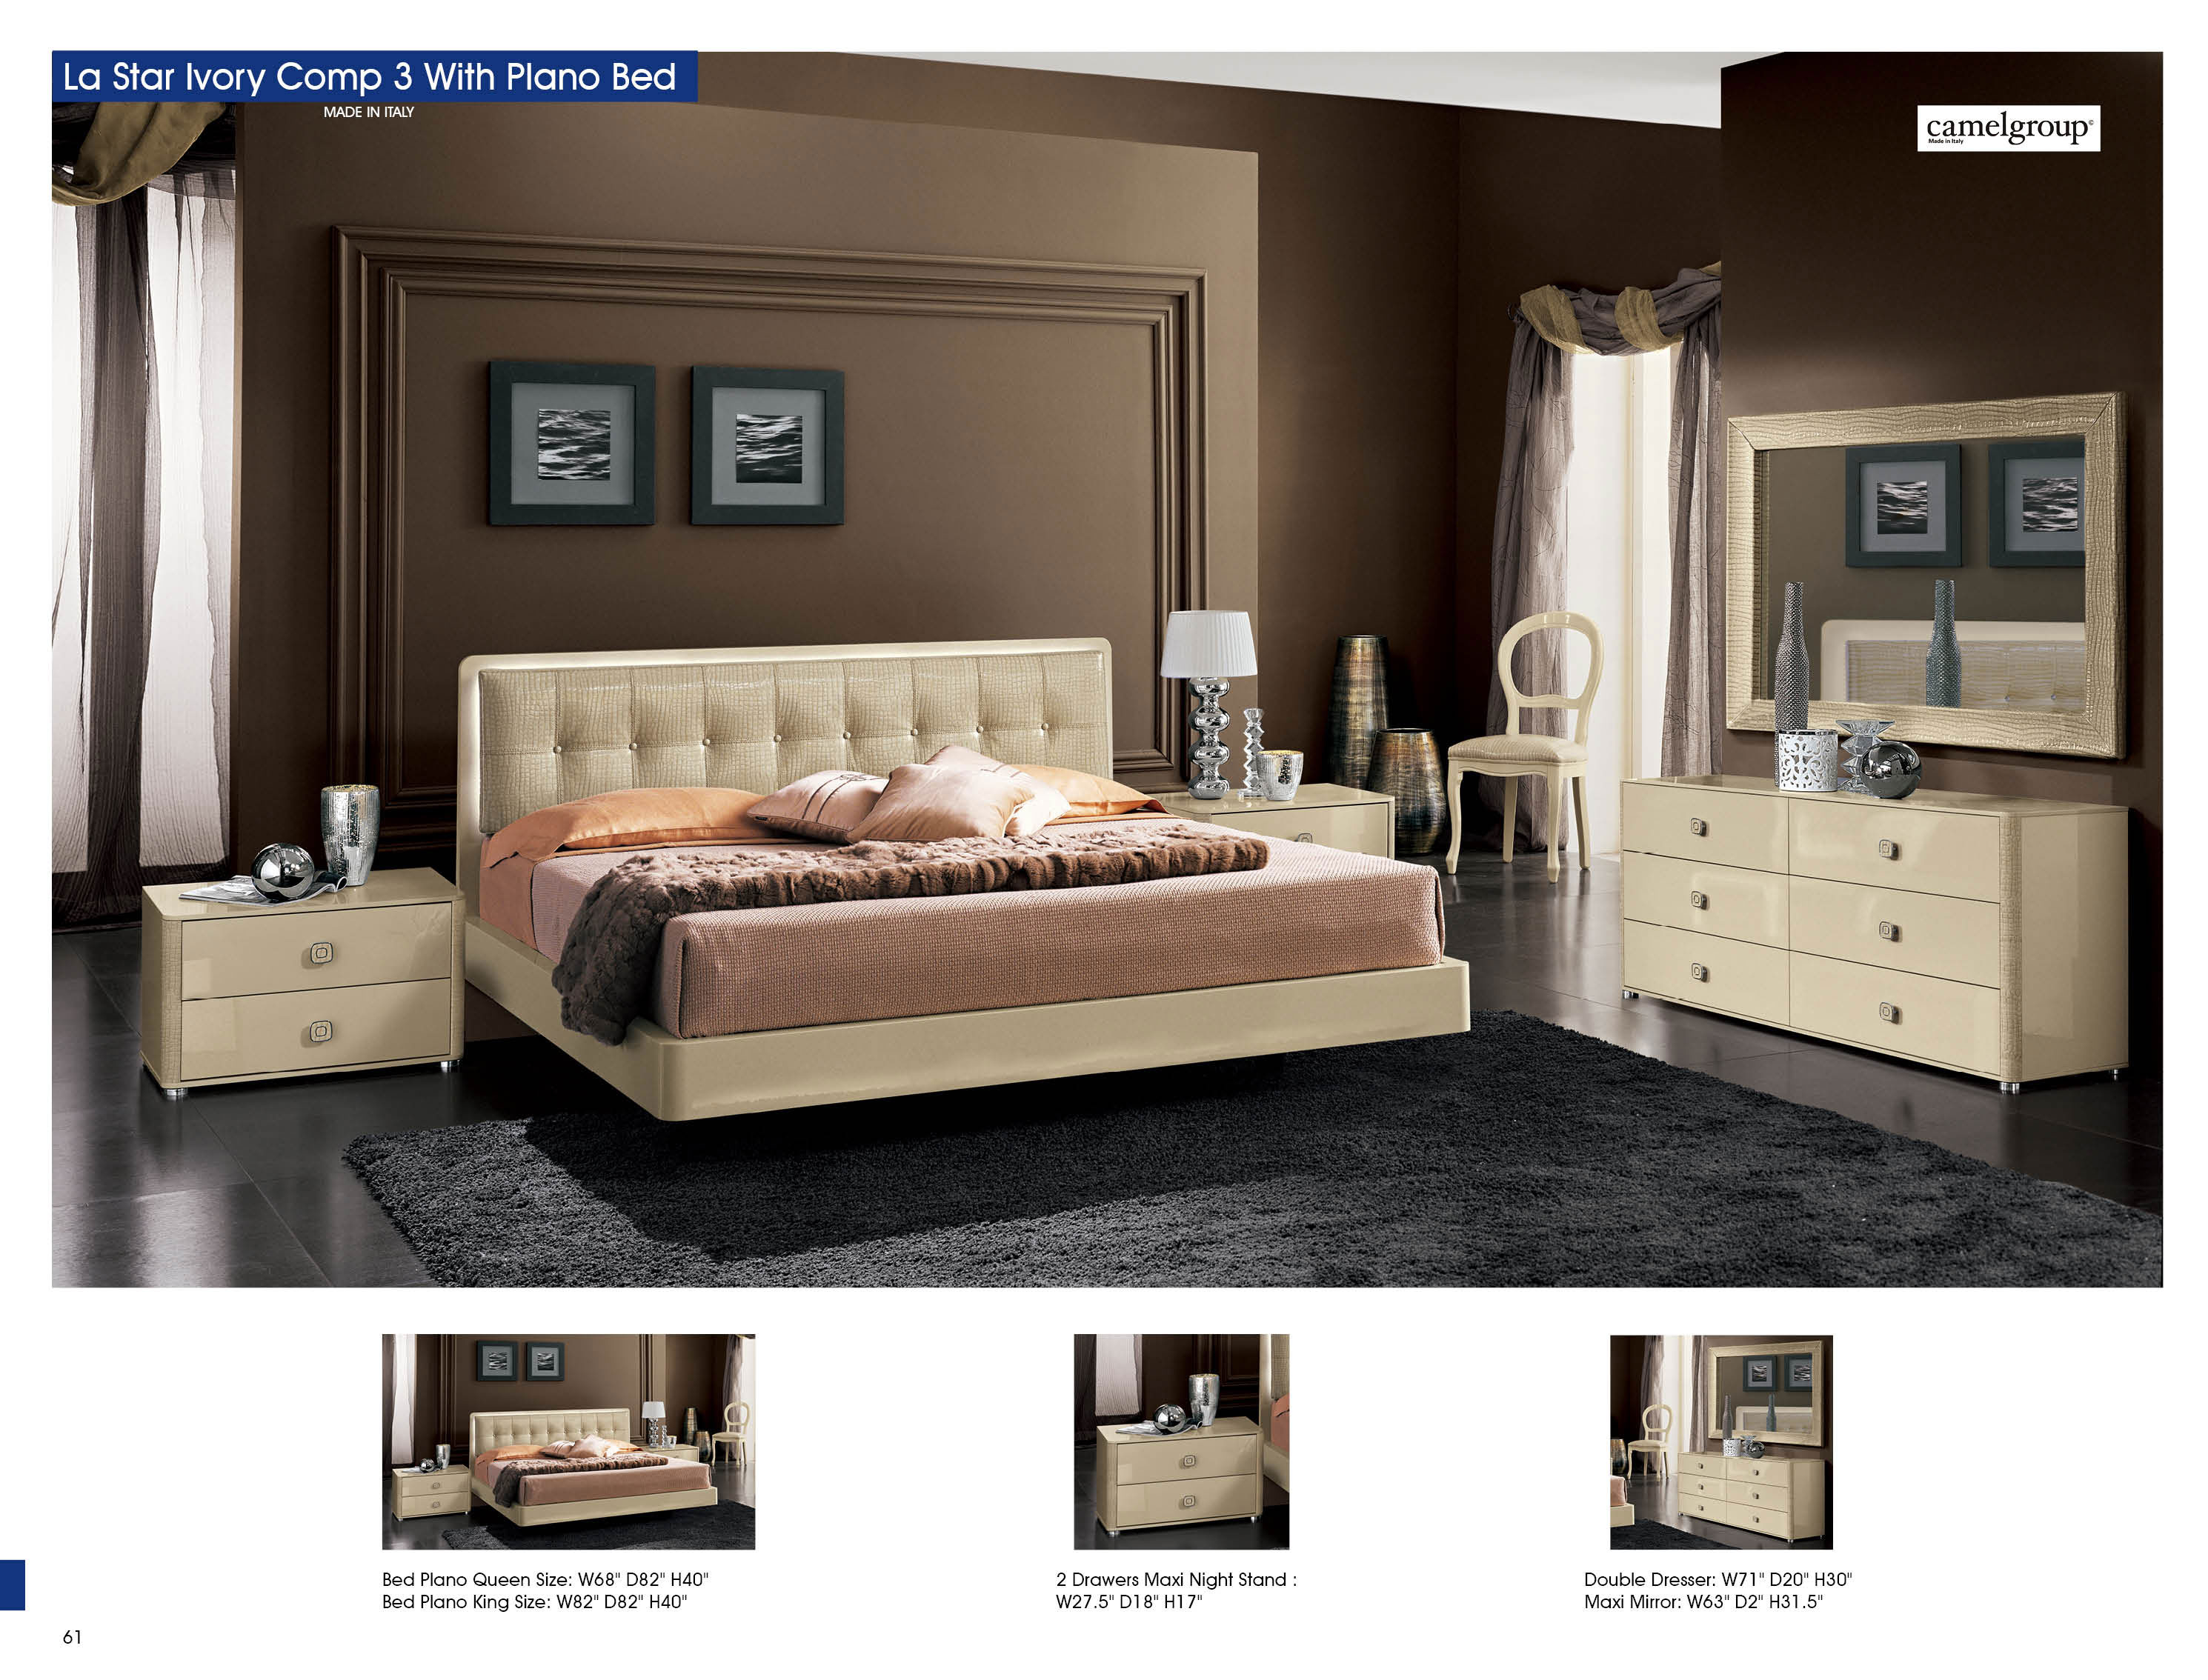 La Star Beige Comp 3 Wplano Bed Camelgroup Italy Modern Bedrooms throughout Italian Modern Bedrooms